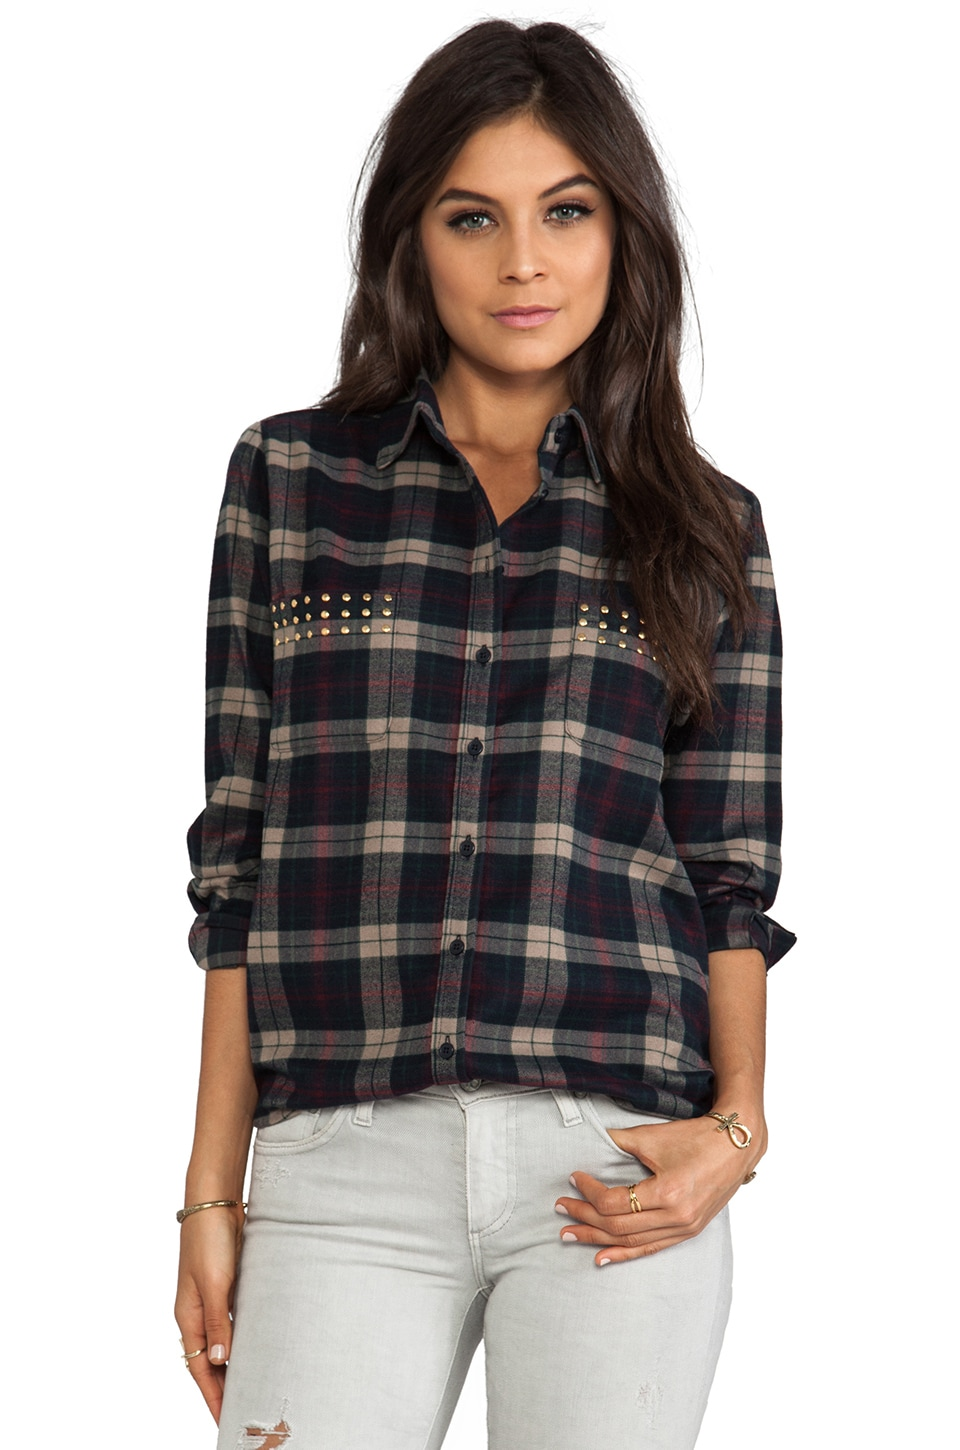 Lovers + Friends Boyfriend Button Up Blouse in Plaid w/ Studs